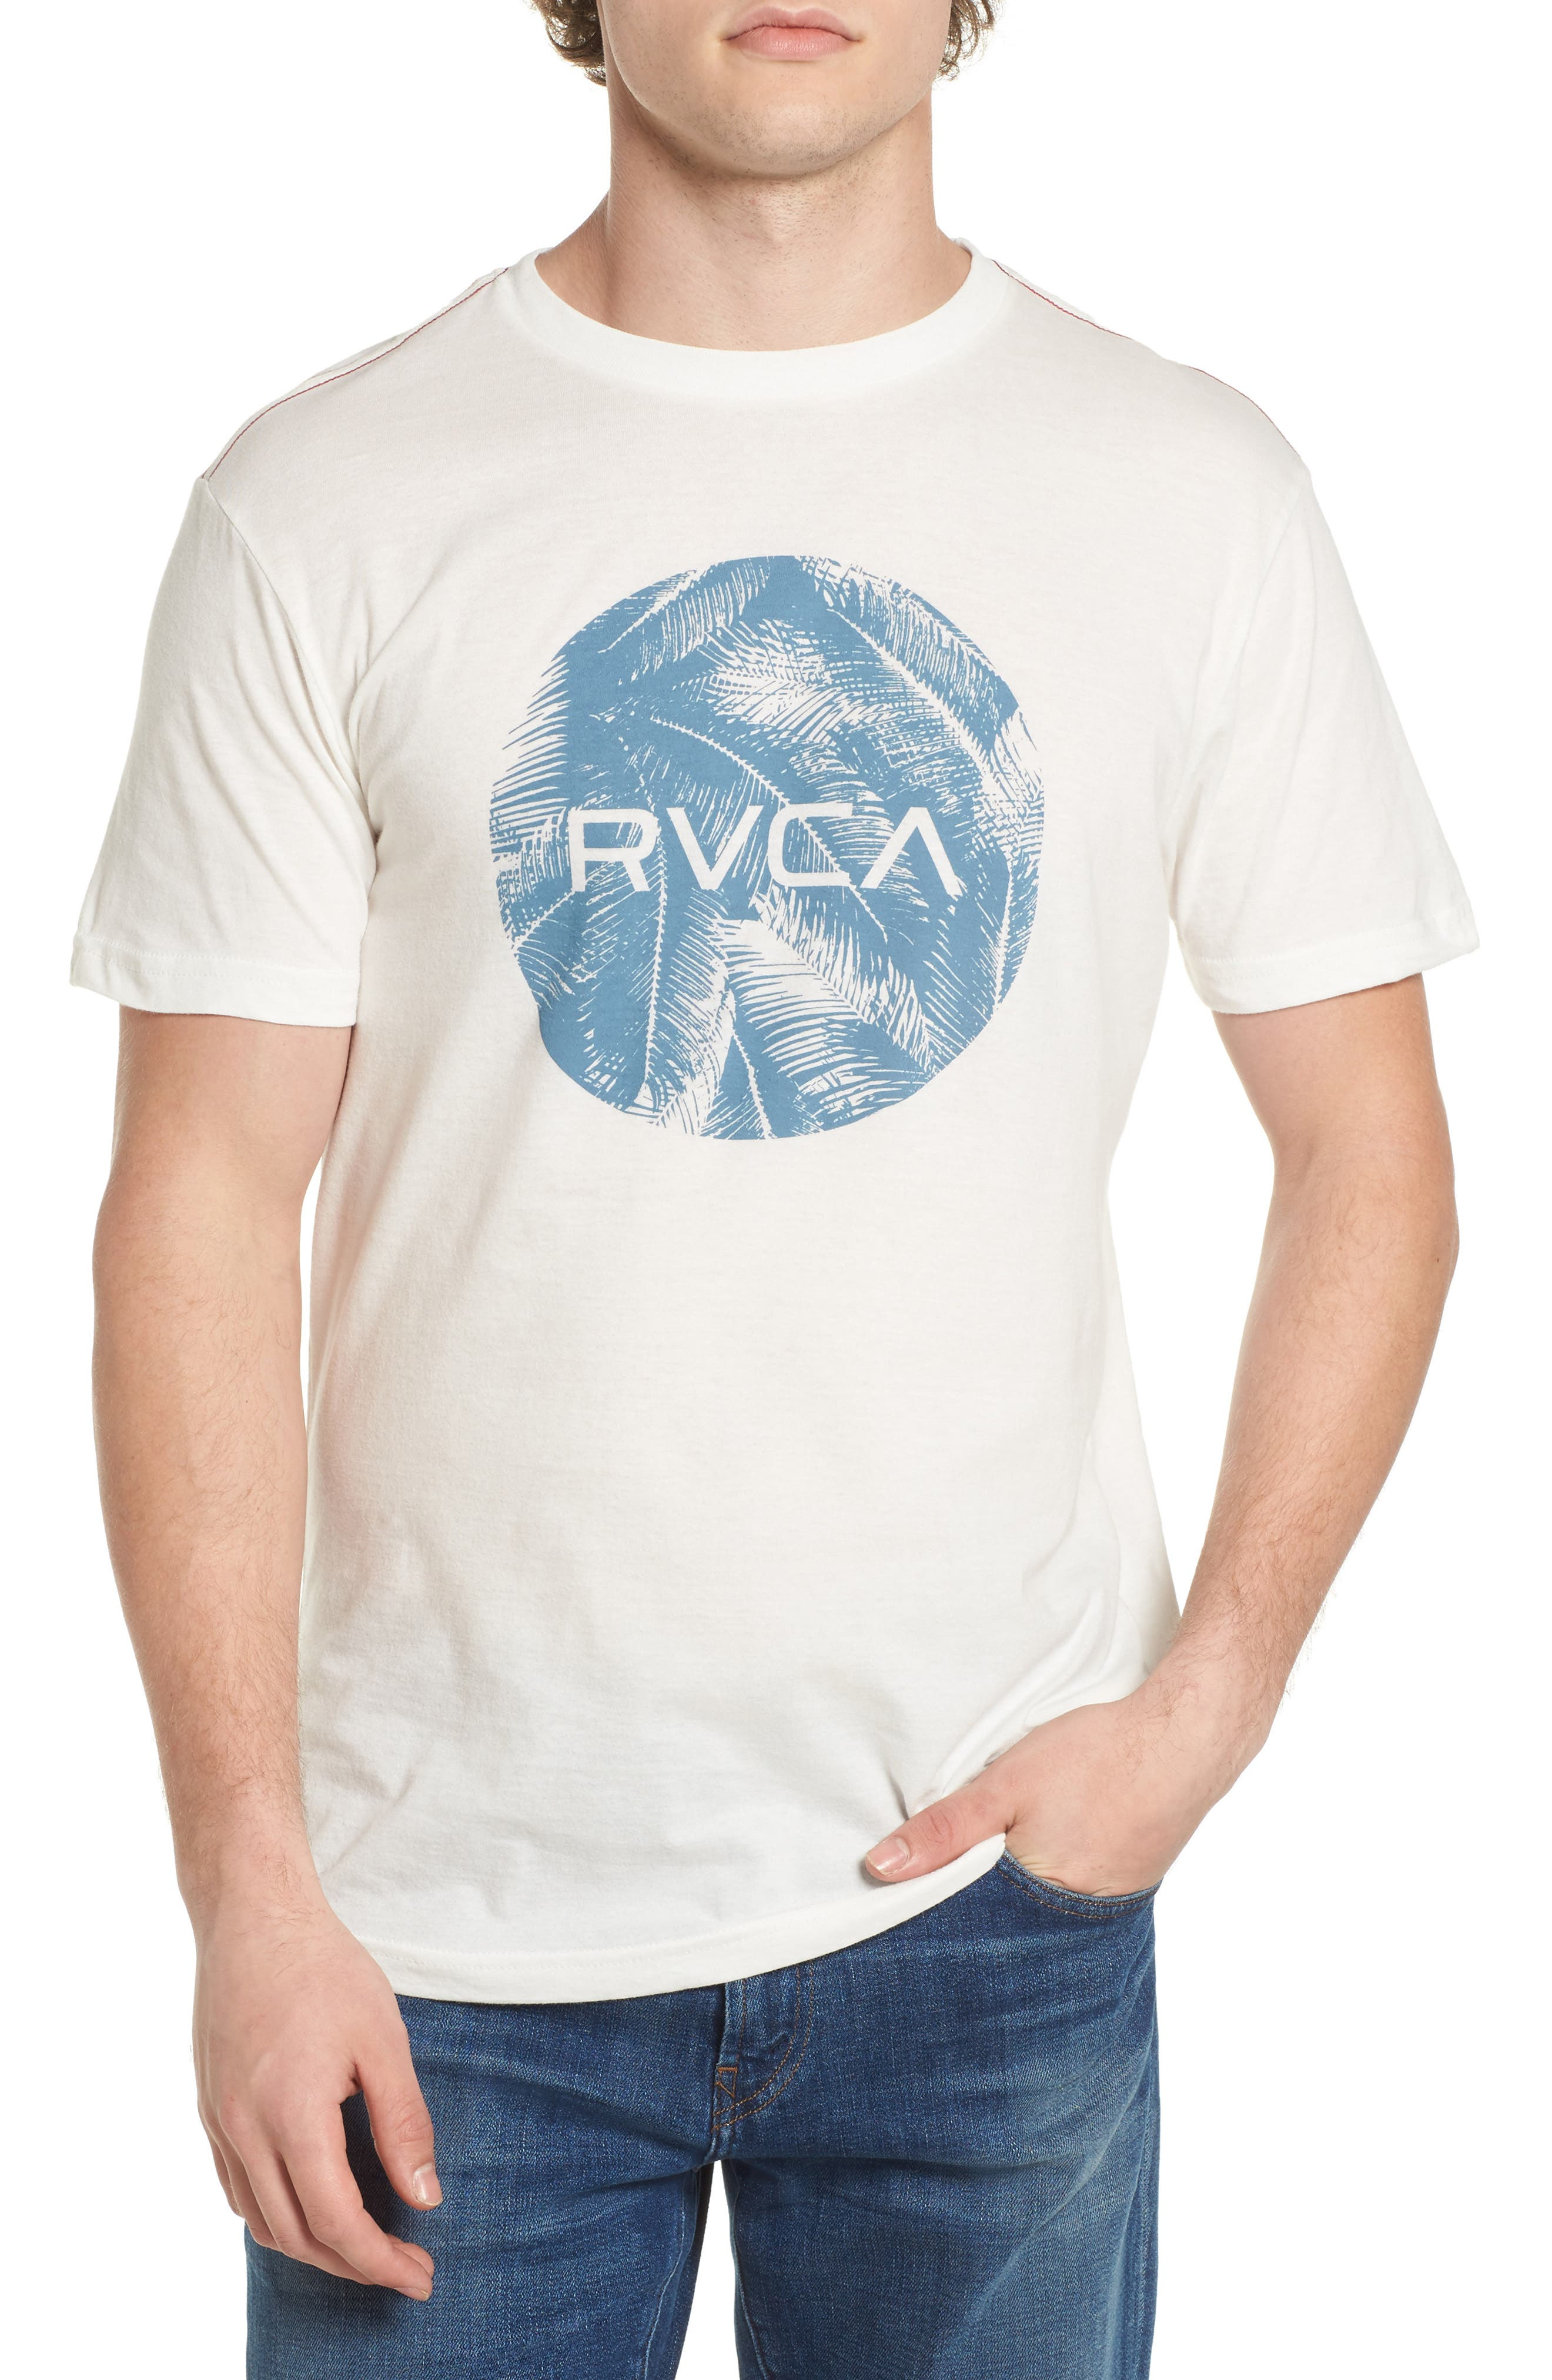 RVCA Motors Palm Graphic T-Shirt